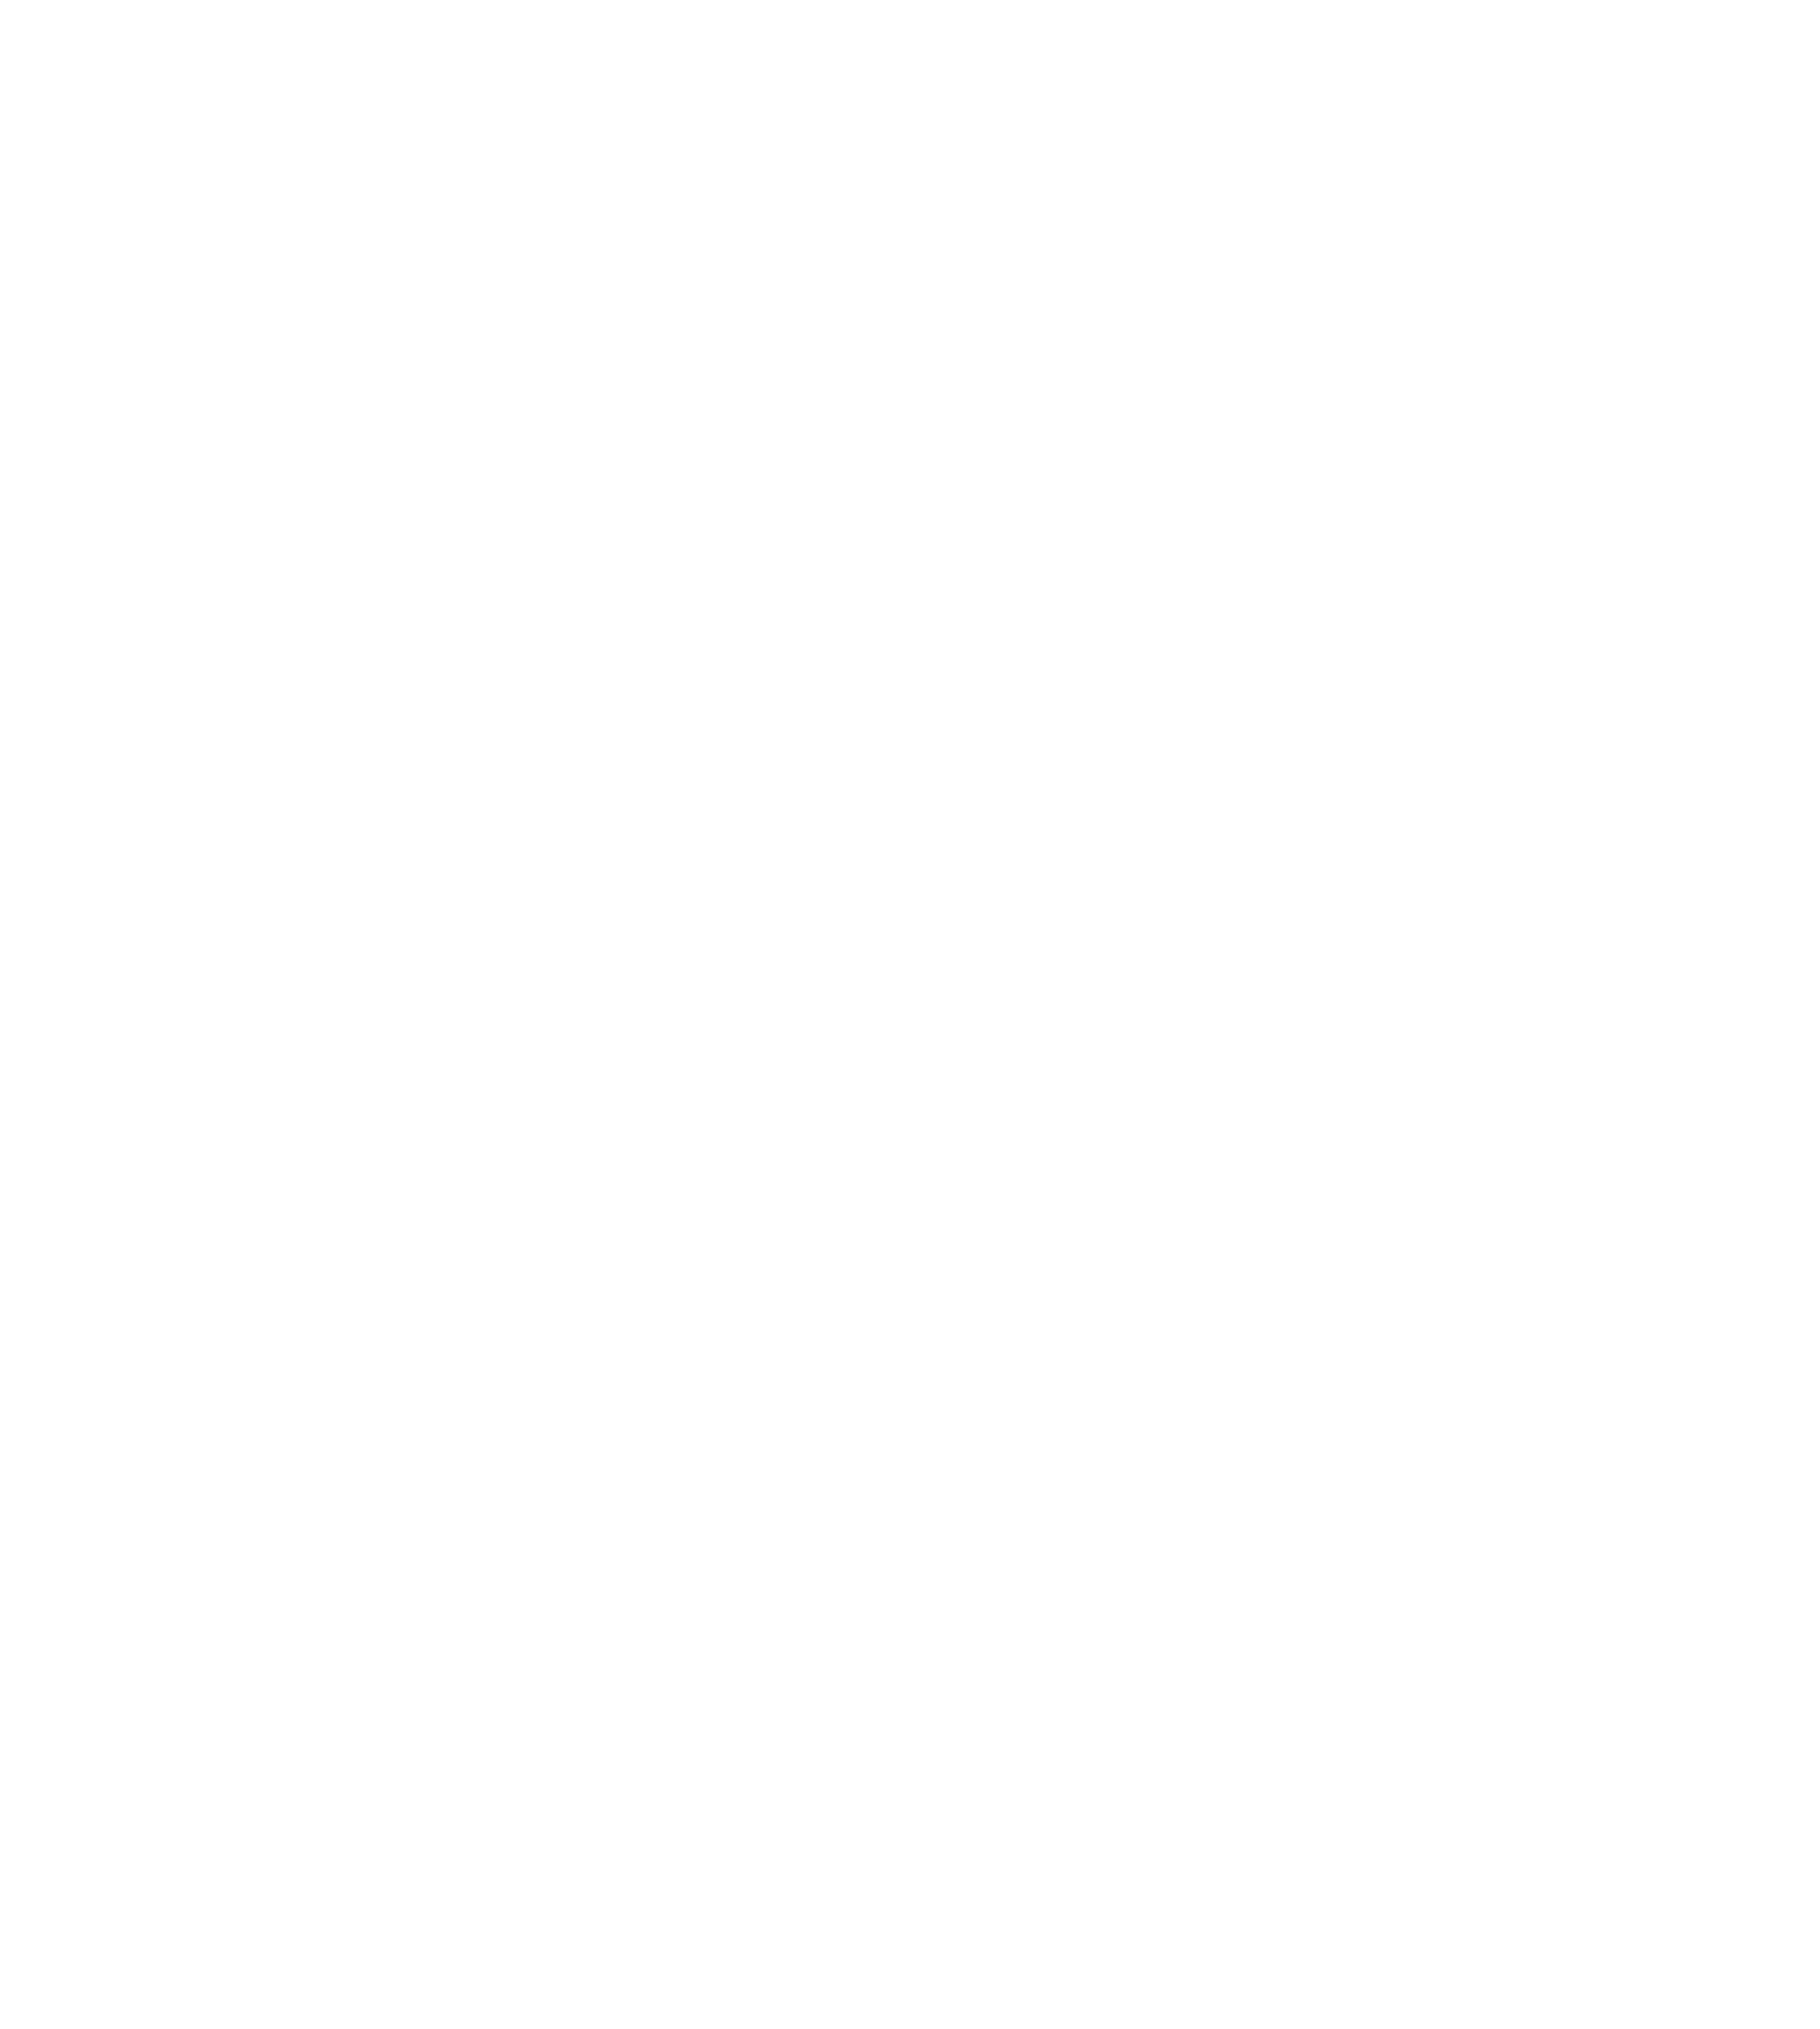 Rose gold snowflake clipart clip art transparent download Snowflakes PNG Clip Art Image | Gallery Yopriceville - High-Quality ... clip art transparent download